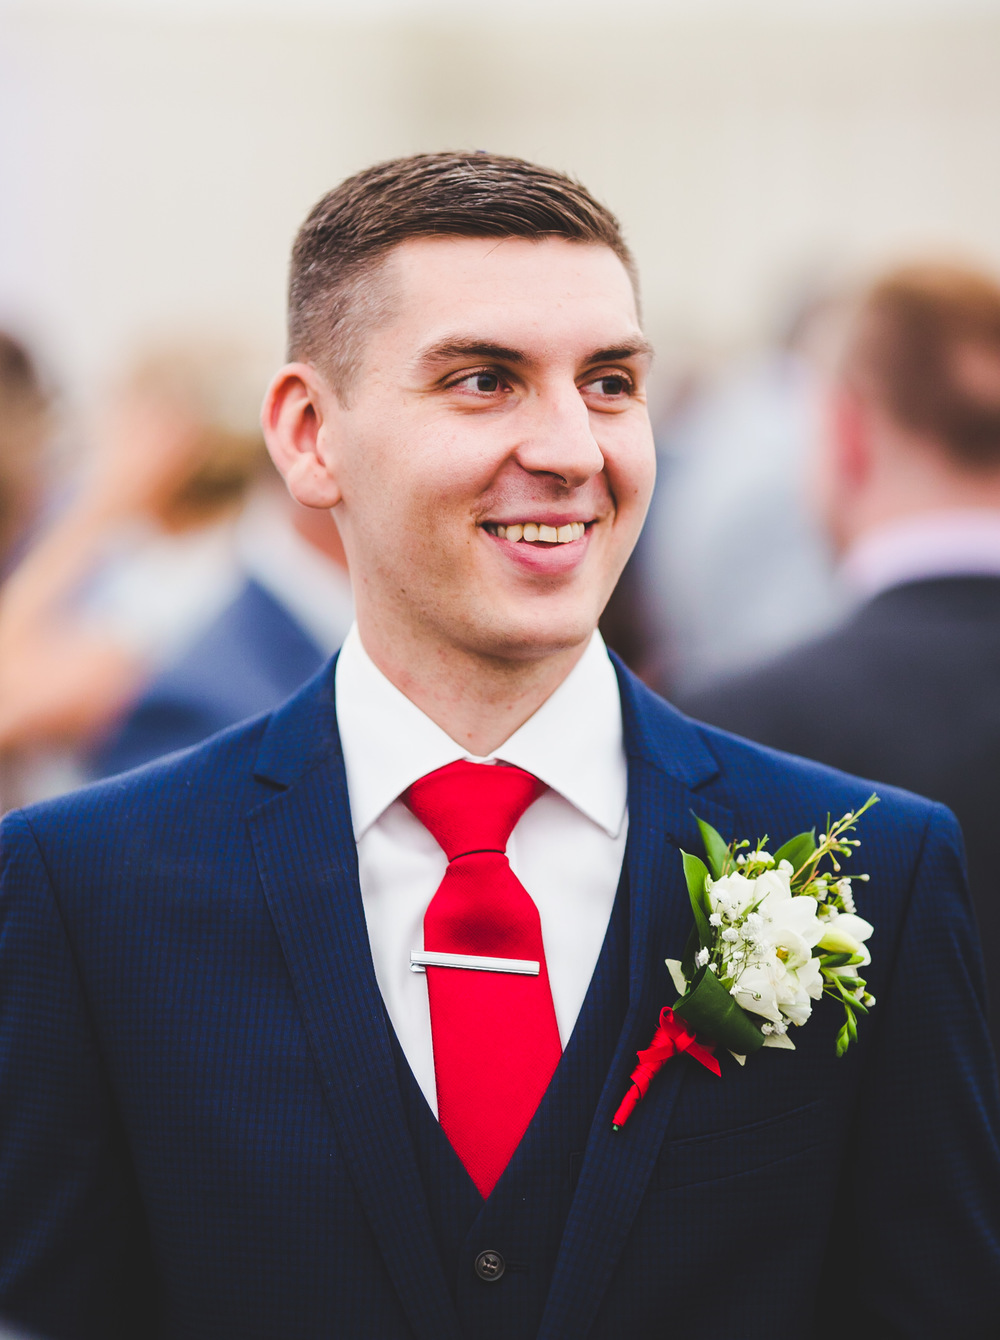 Portrait of the handsome from smiling.- lancashire wedding photographer